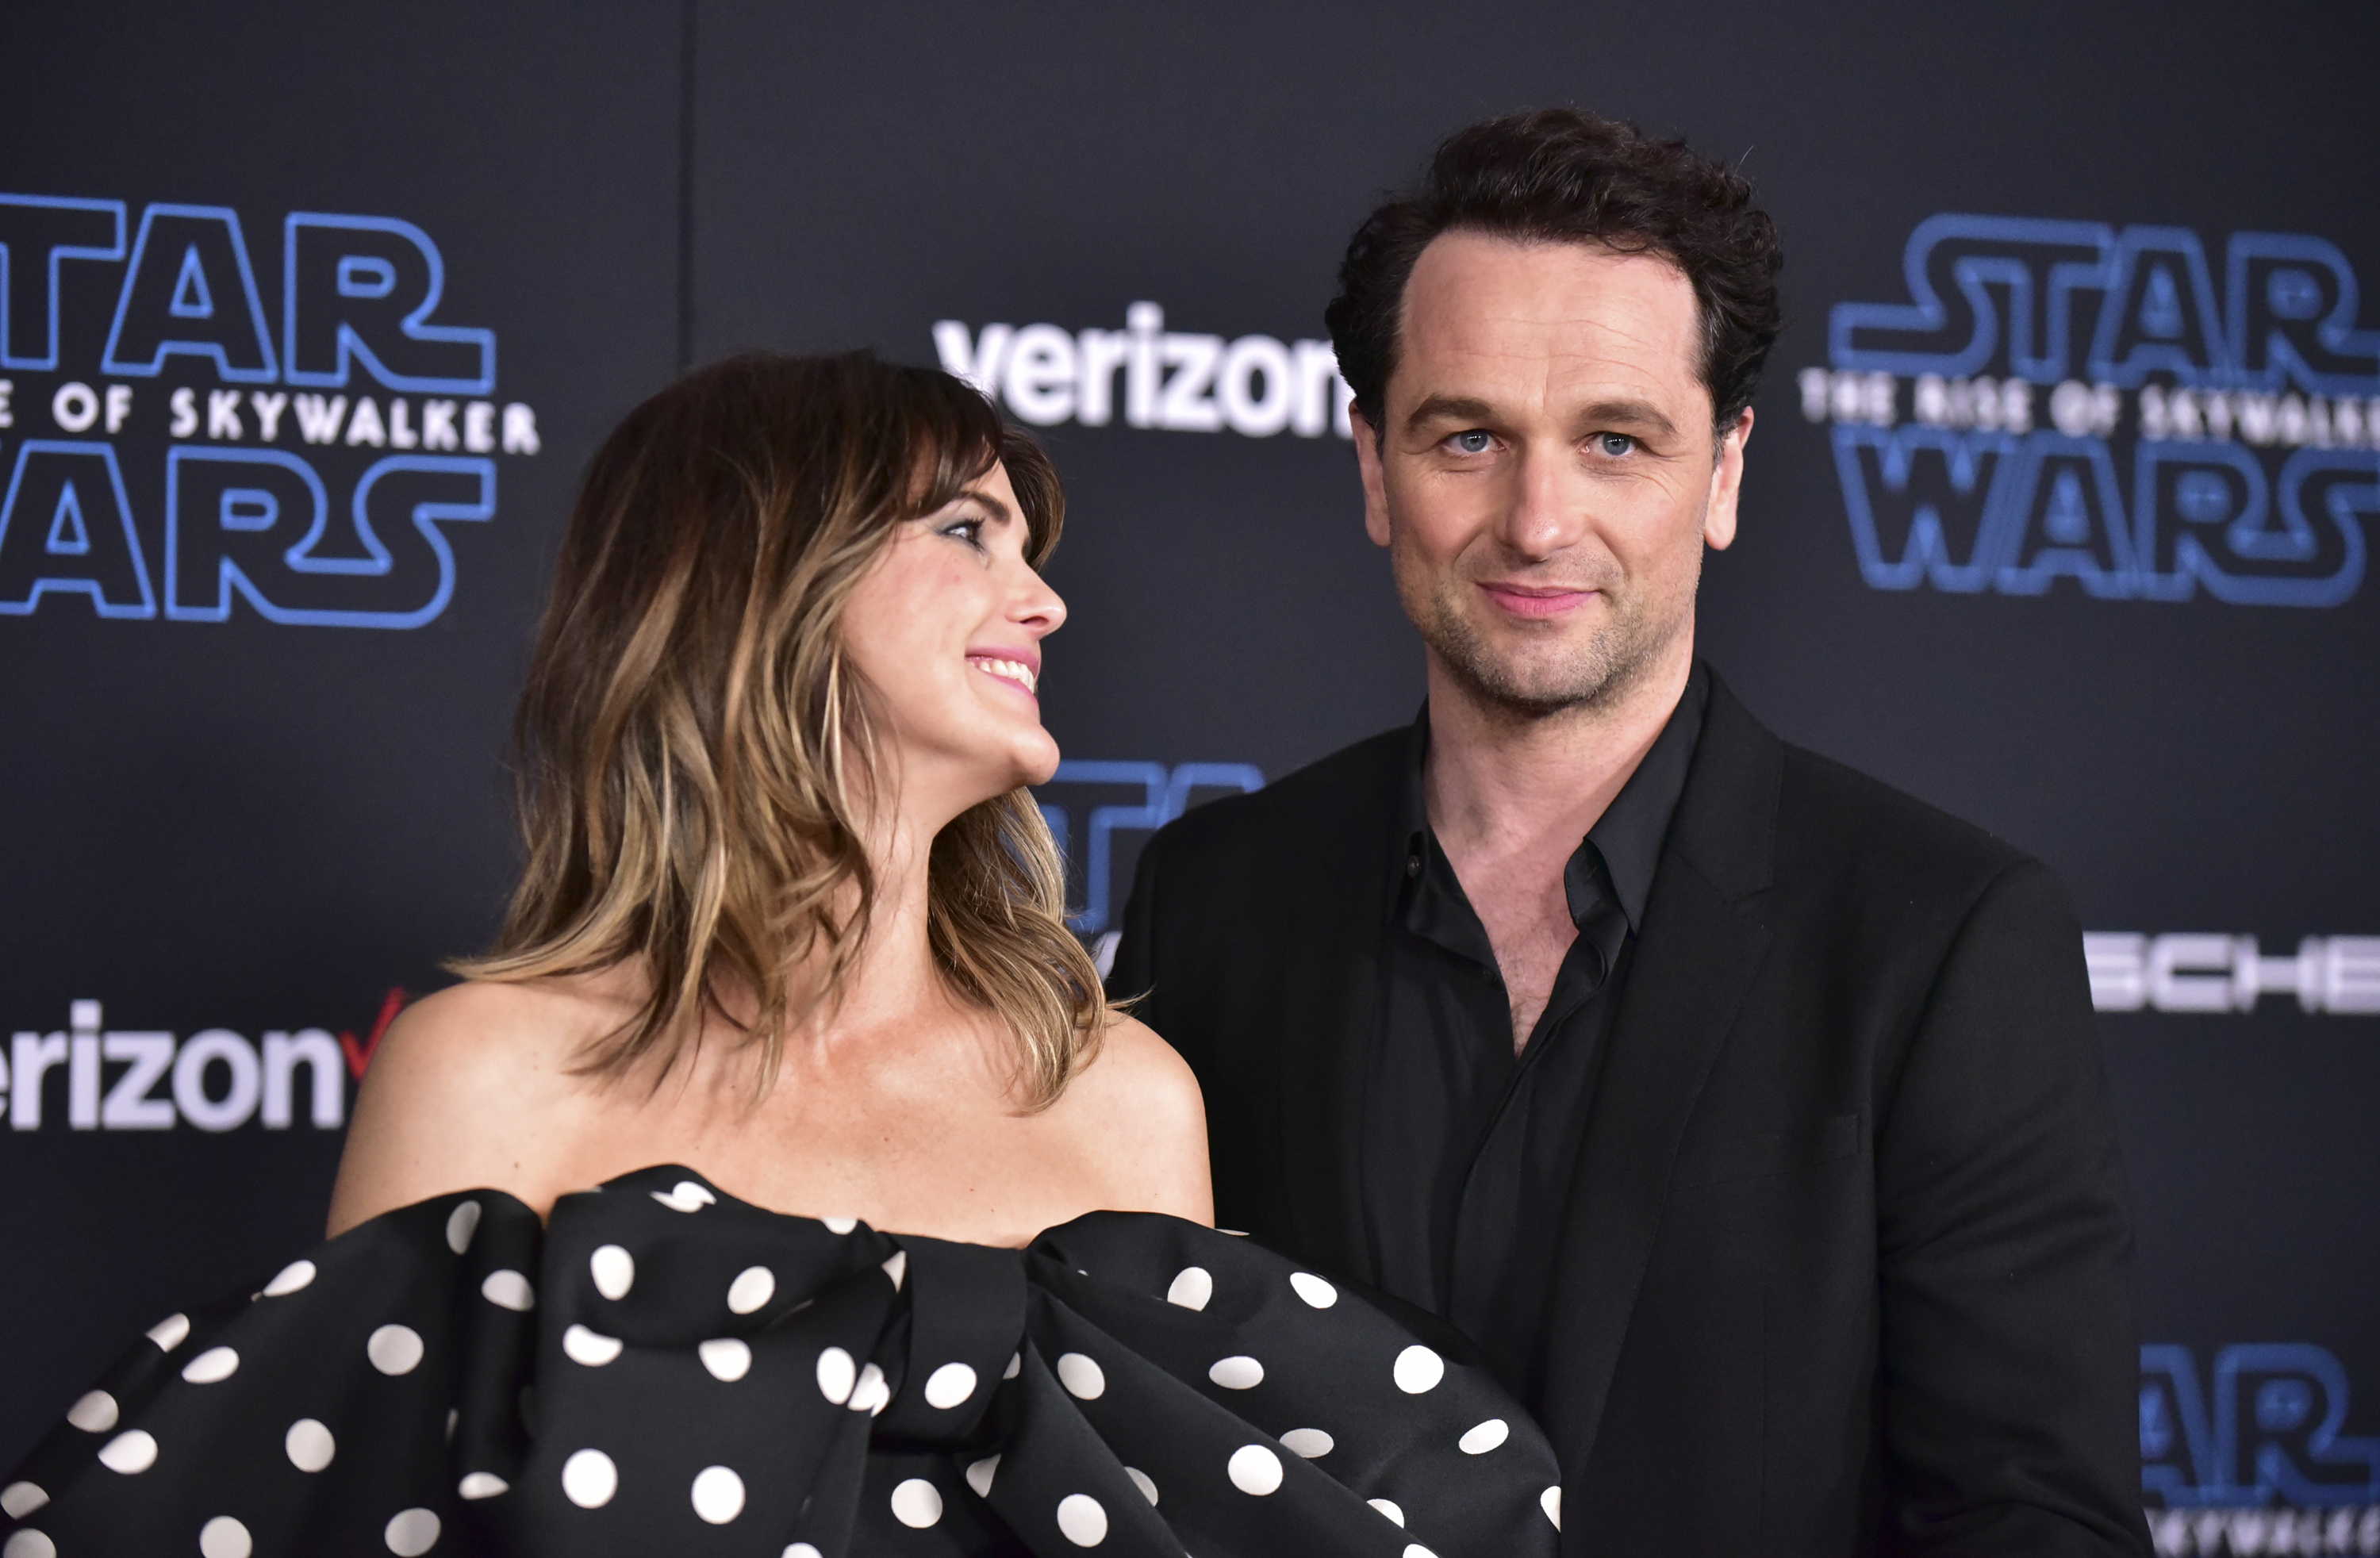 Keri Russell and Matthew Rhys at an event for Star Wars: Episode IX - The Rise of Skywalker (2019)